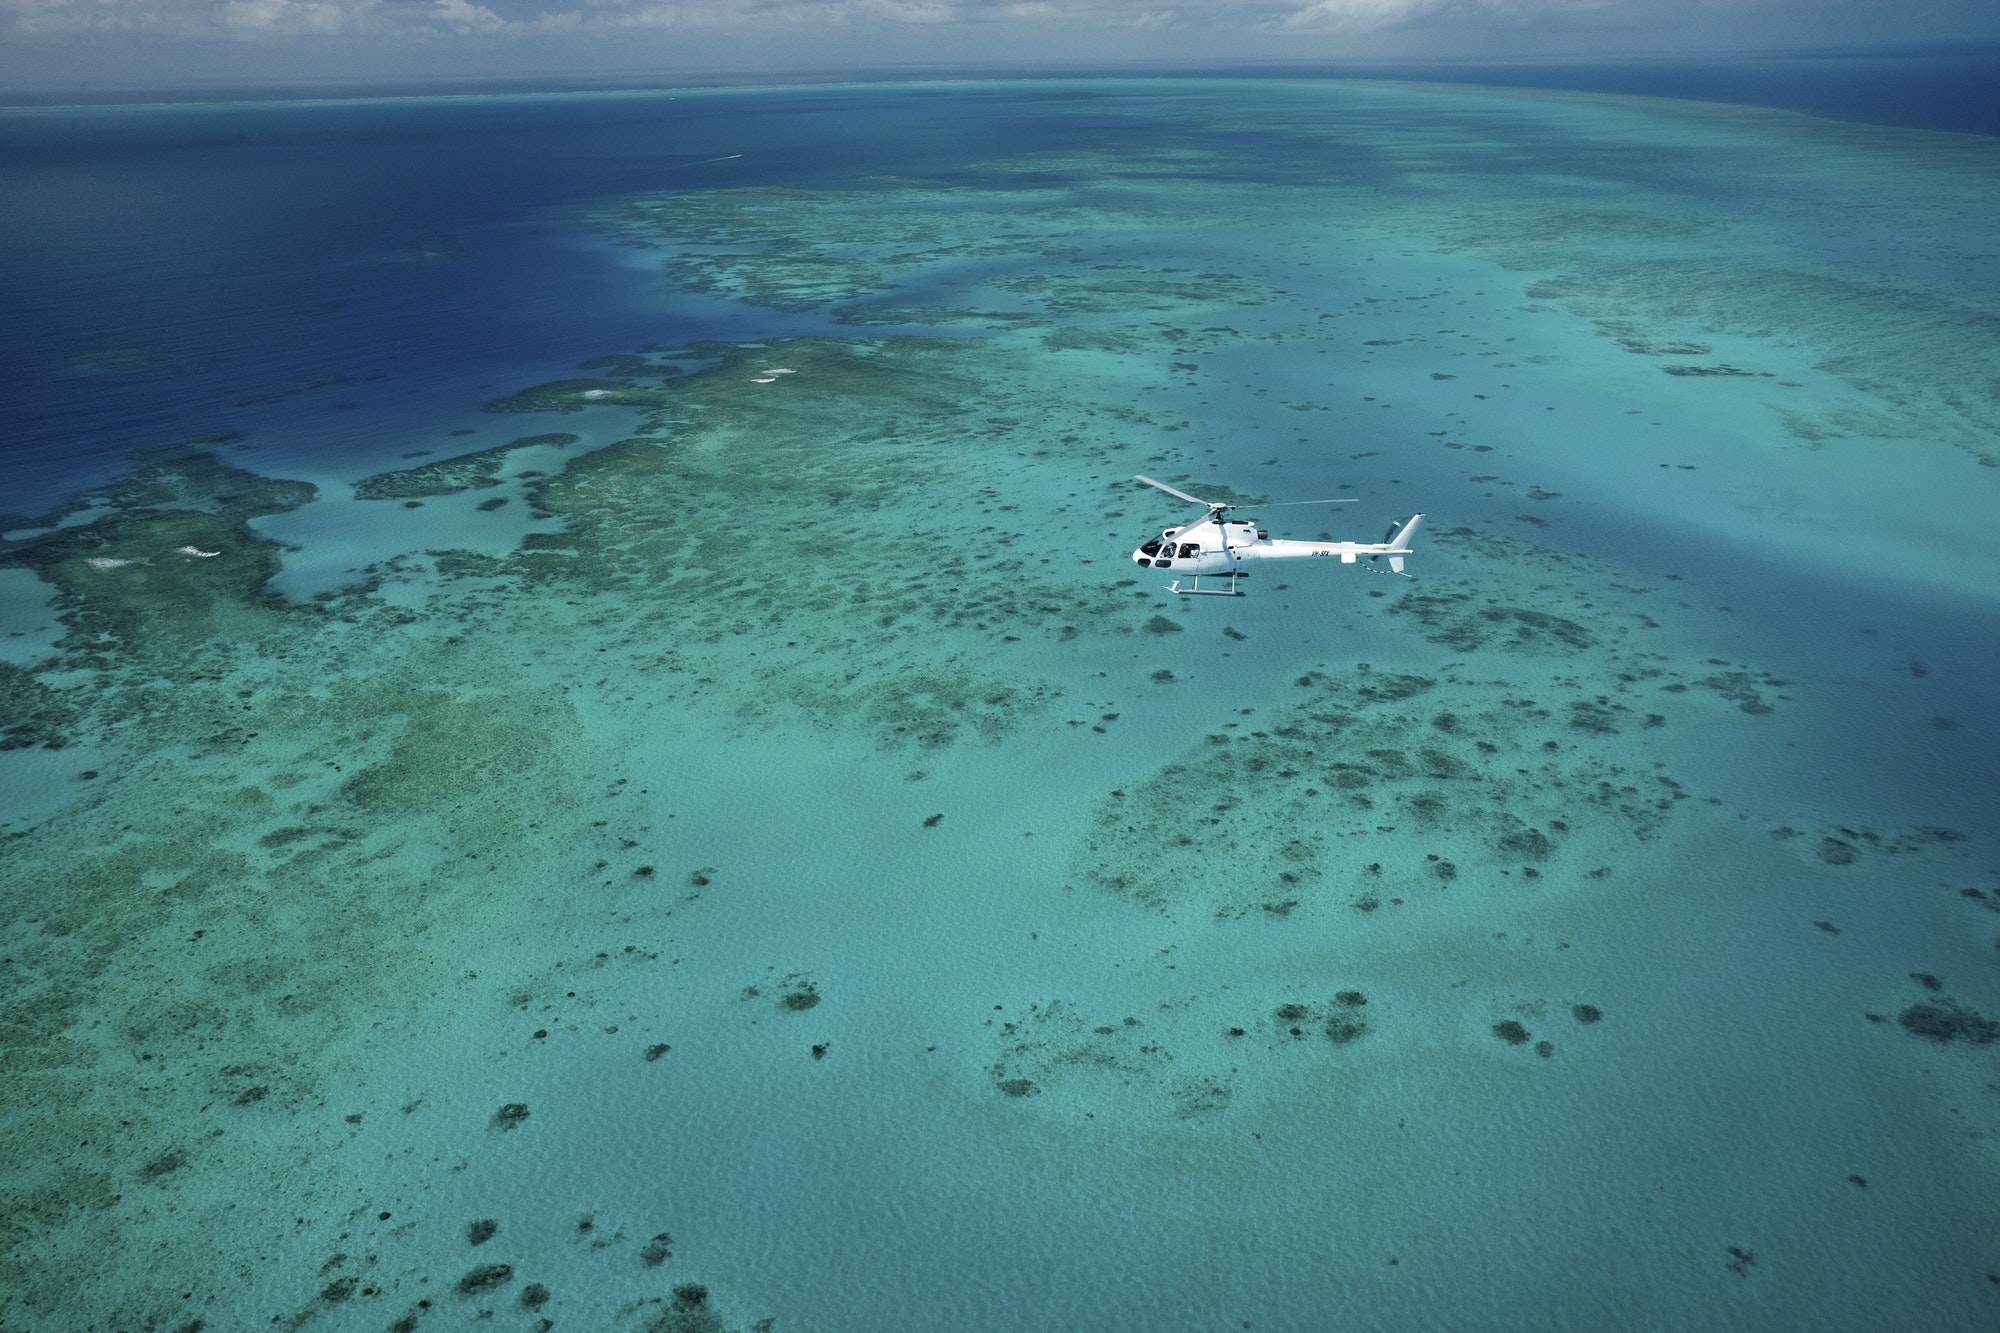 Helicopter tour over parts of the Great Barrier Reef,Aerial tour of Great Barrier reef.